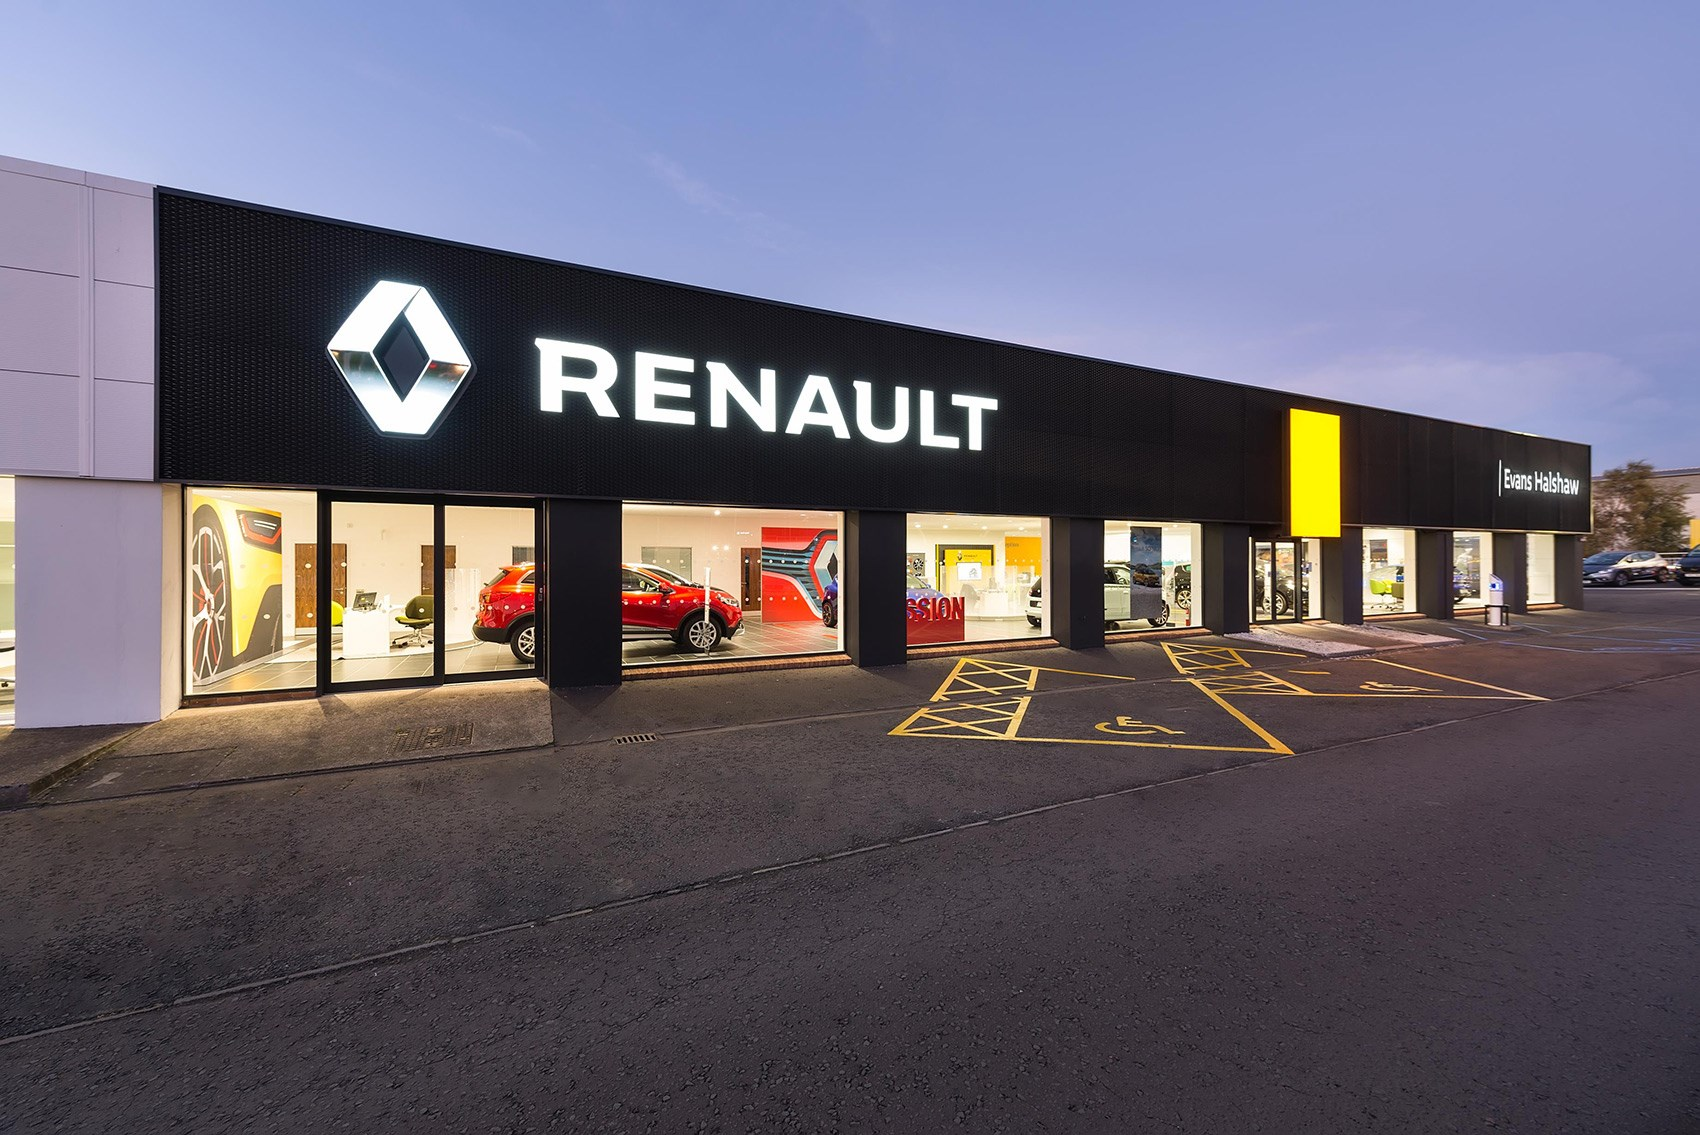 New 2018 Renault Store Dealerships By Car Magazine